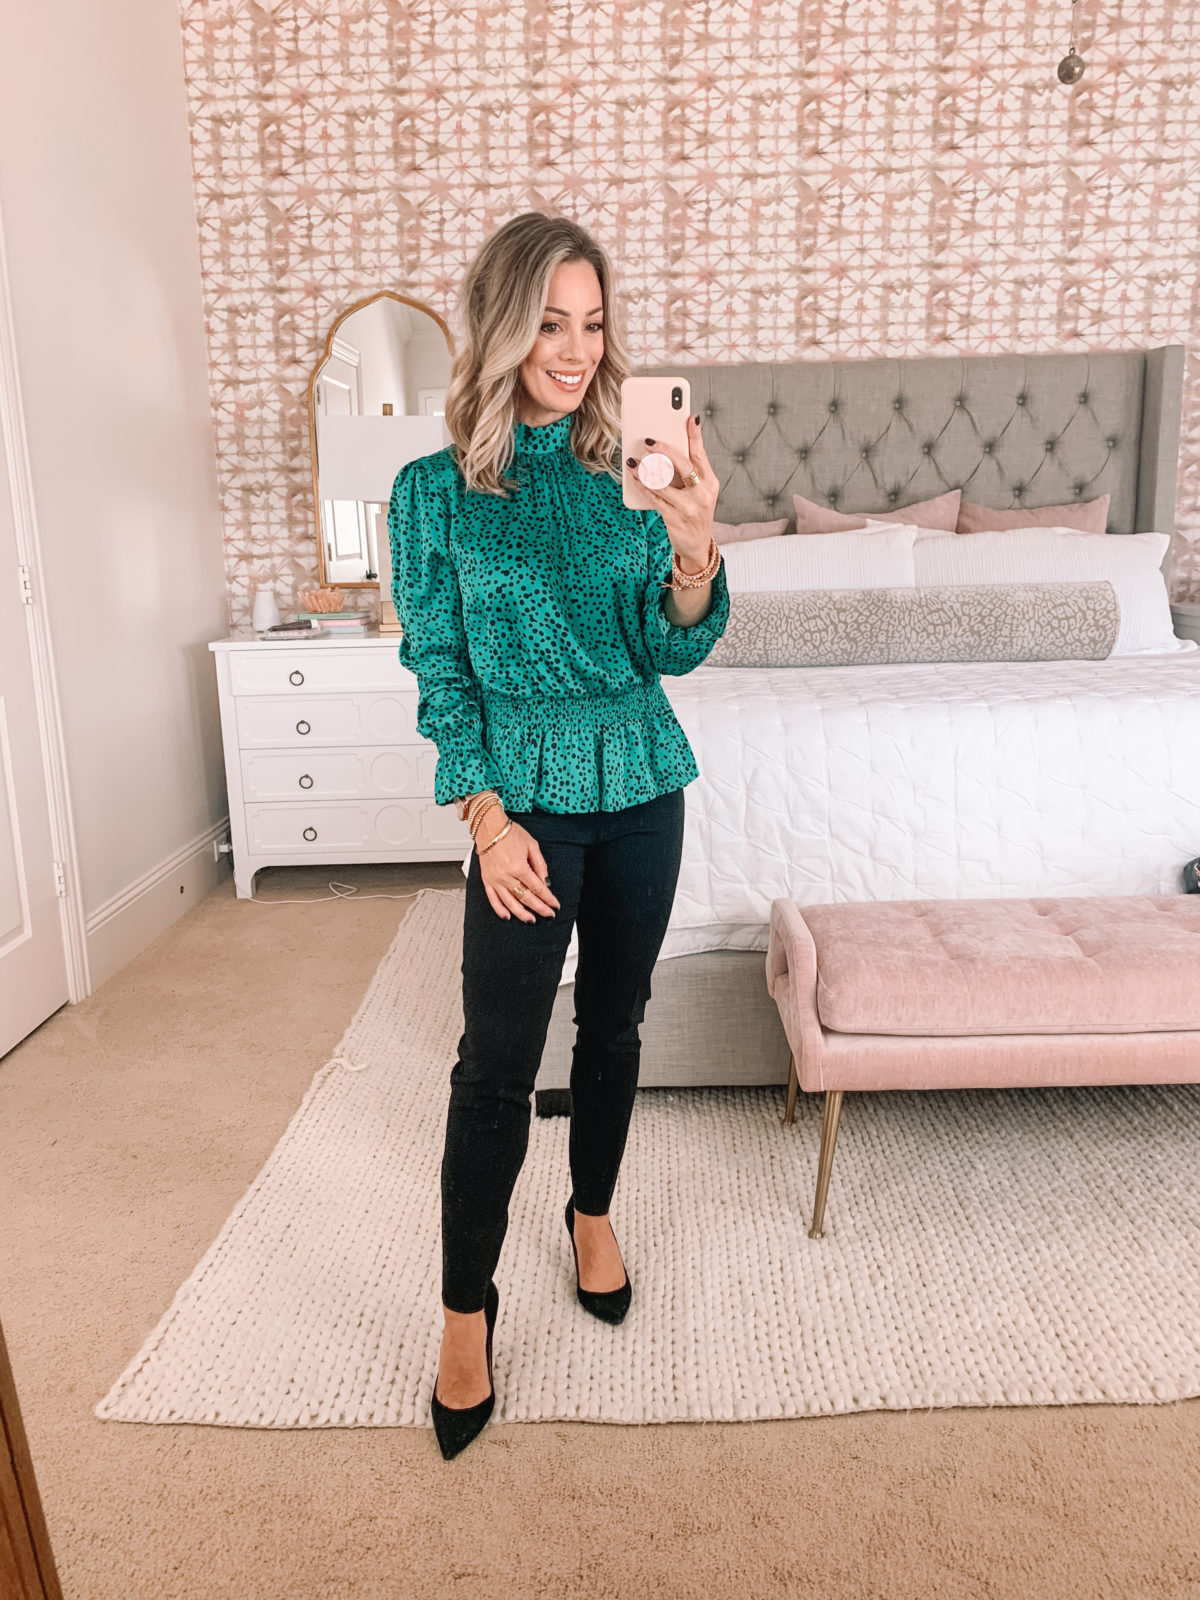 Walmart Fashion Finds, Dotted Peplum Top, Pants, Heels